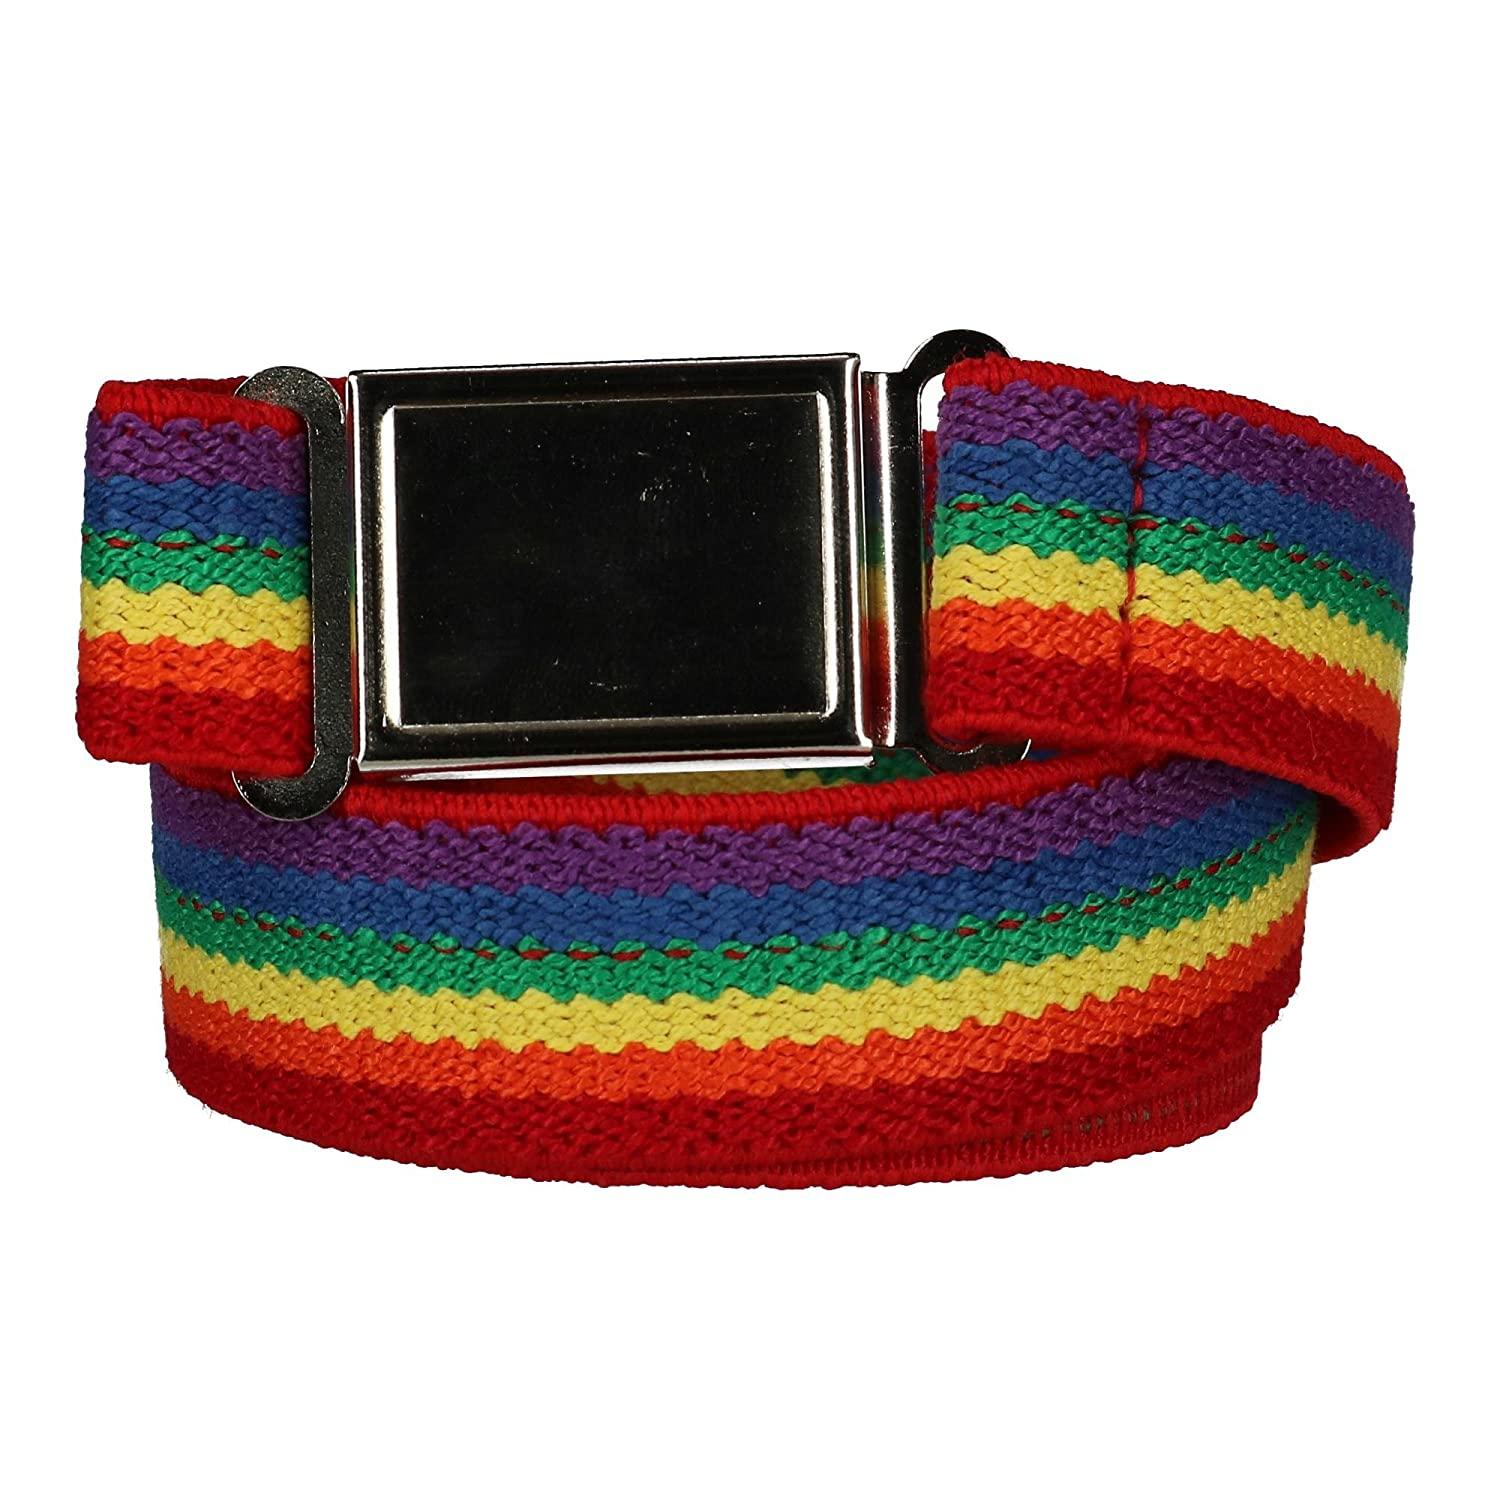 CTM Kids' Elastic Rainbow Adjustable Belt with Magnetic Buckle, Rainbow JK-319RAIN-MUL